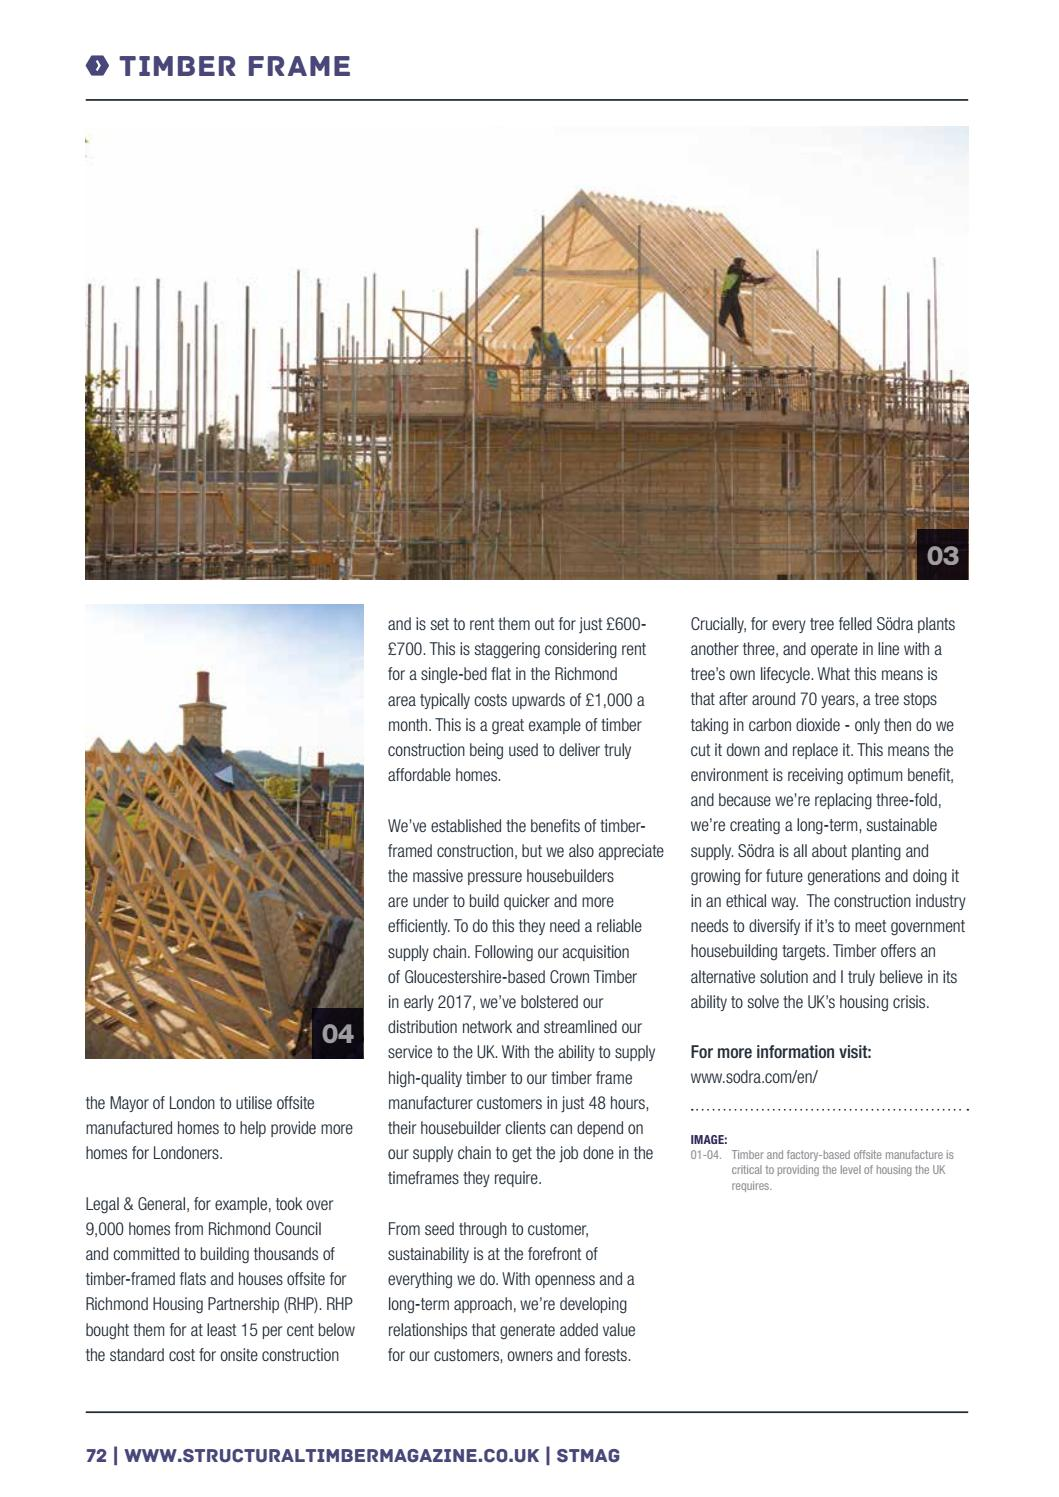 Structural Timber Magazine - Spring 2018 by Radar Communications - issuu